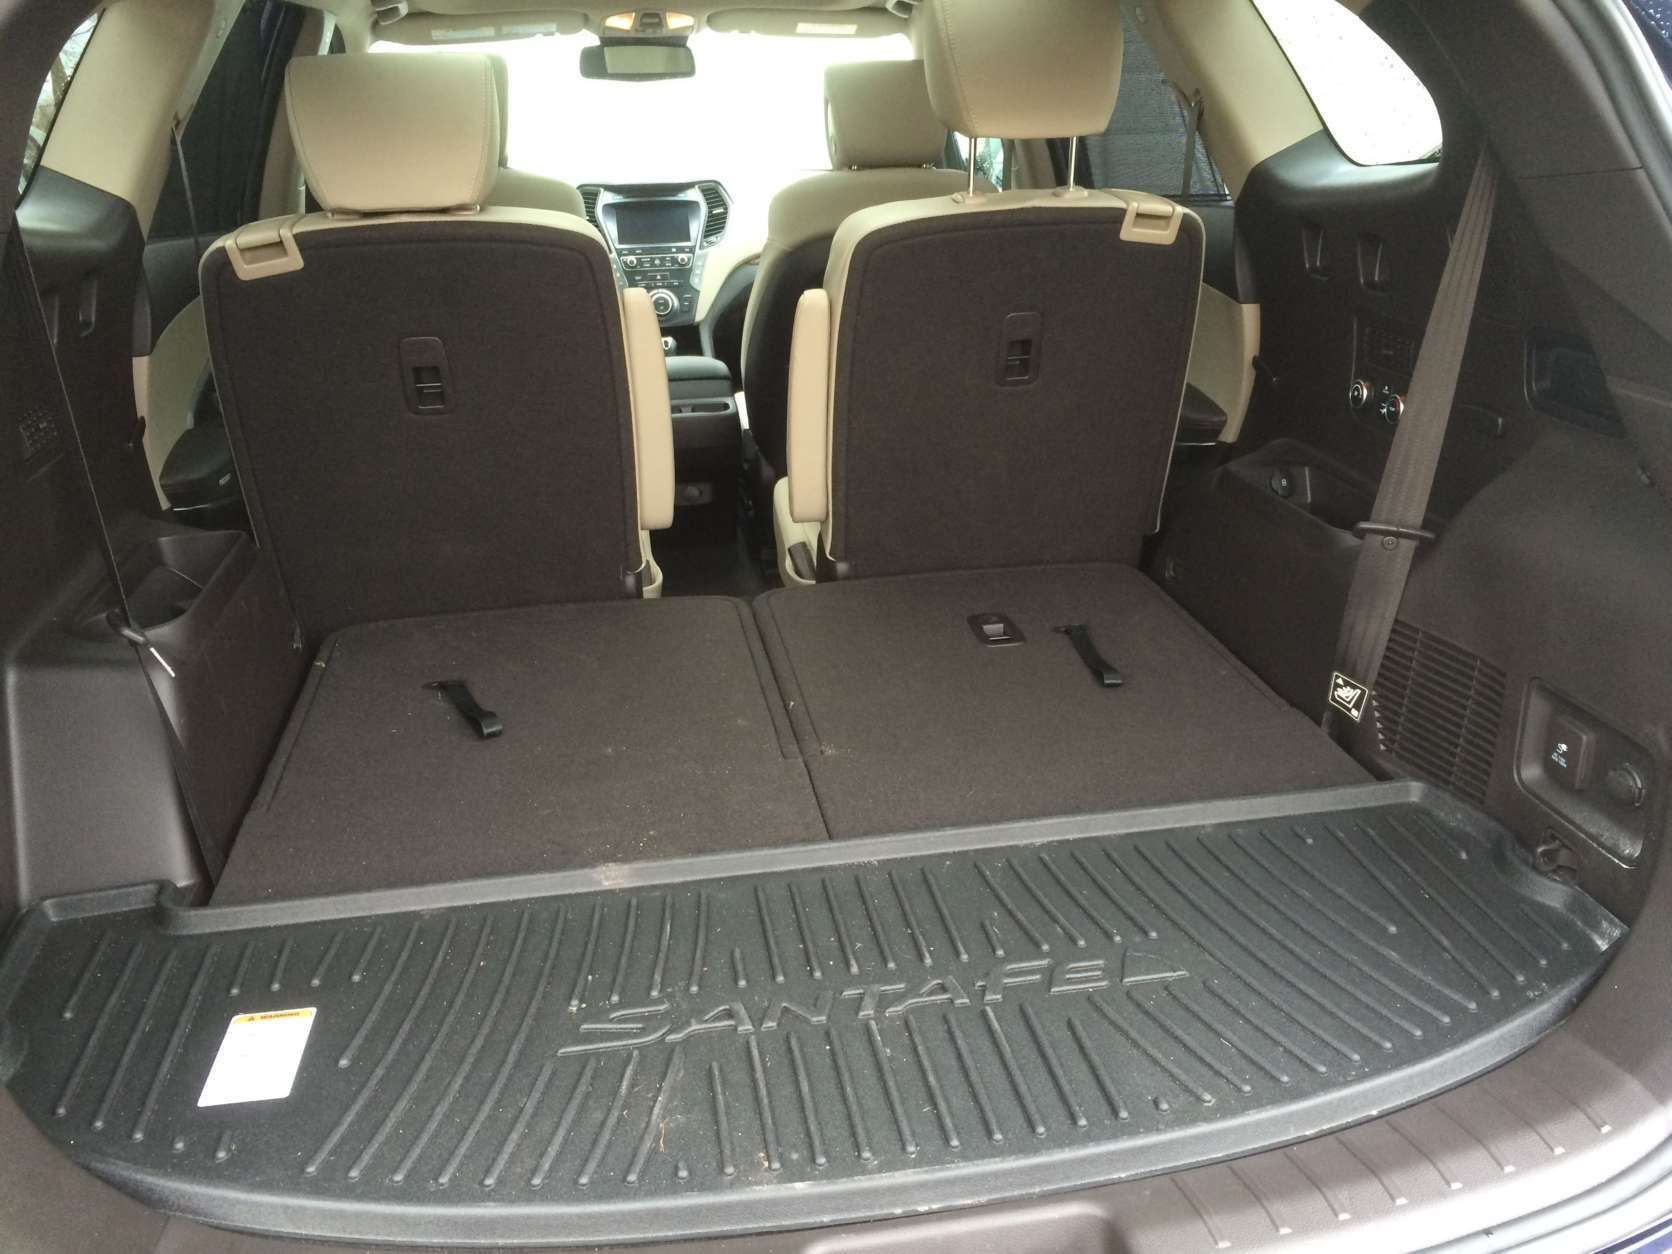 The third row is usable but not the largest in class, but there is a USB port and controls for the climate control. The rear cargo area is adequate but smaller than the Chevy. (WTOP/Mike Parris)